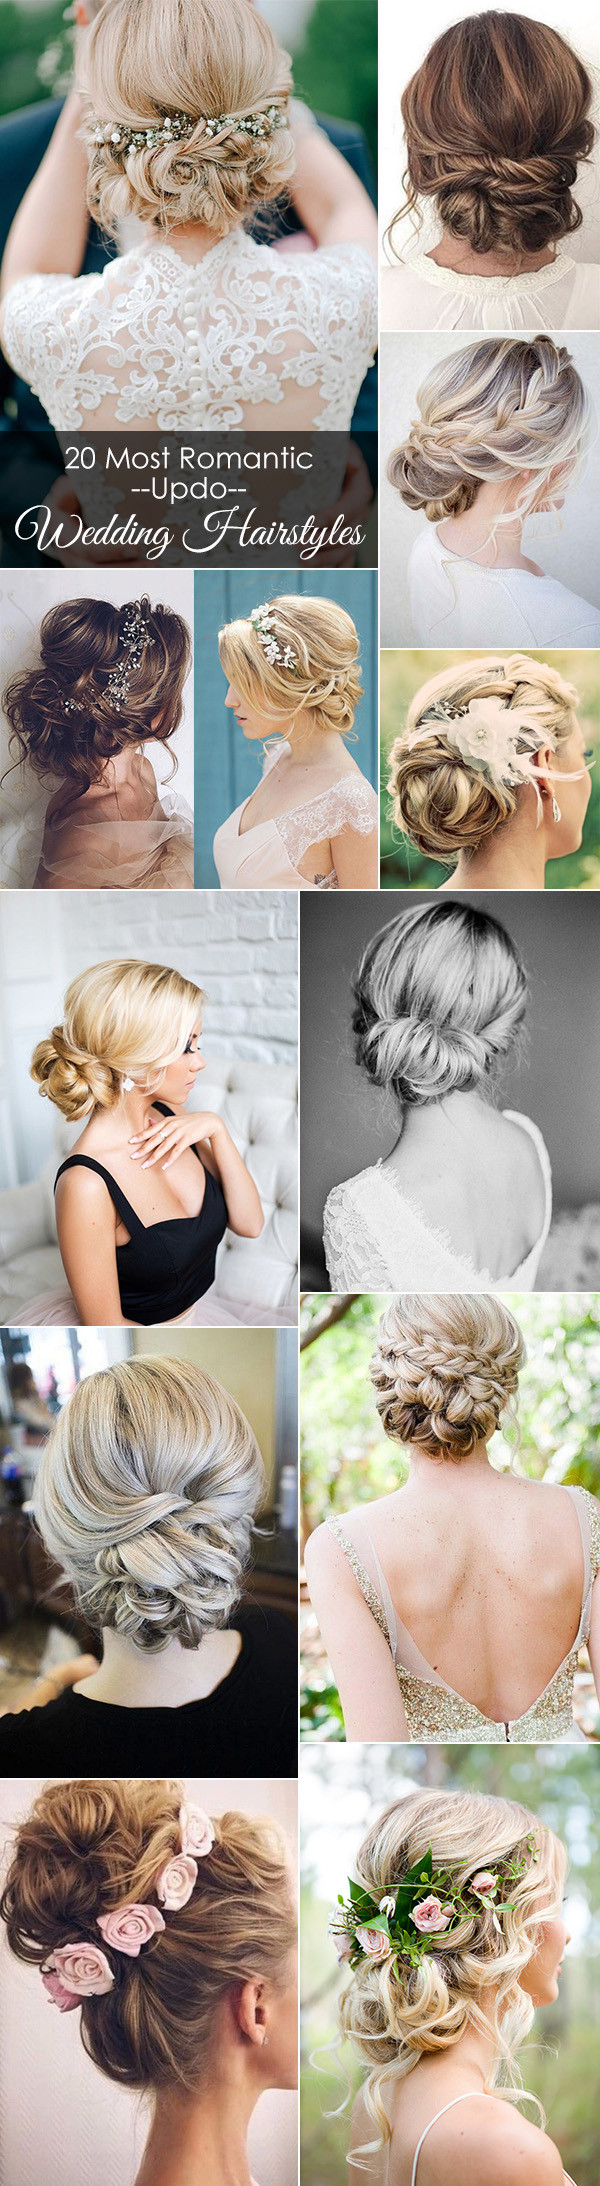 20 Most Romantic Bridal Updos Wedding Hairstyles To Inspire Your Big